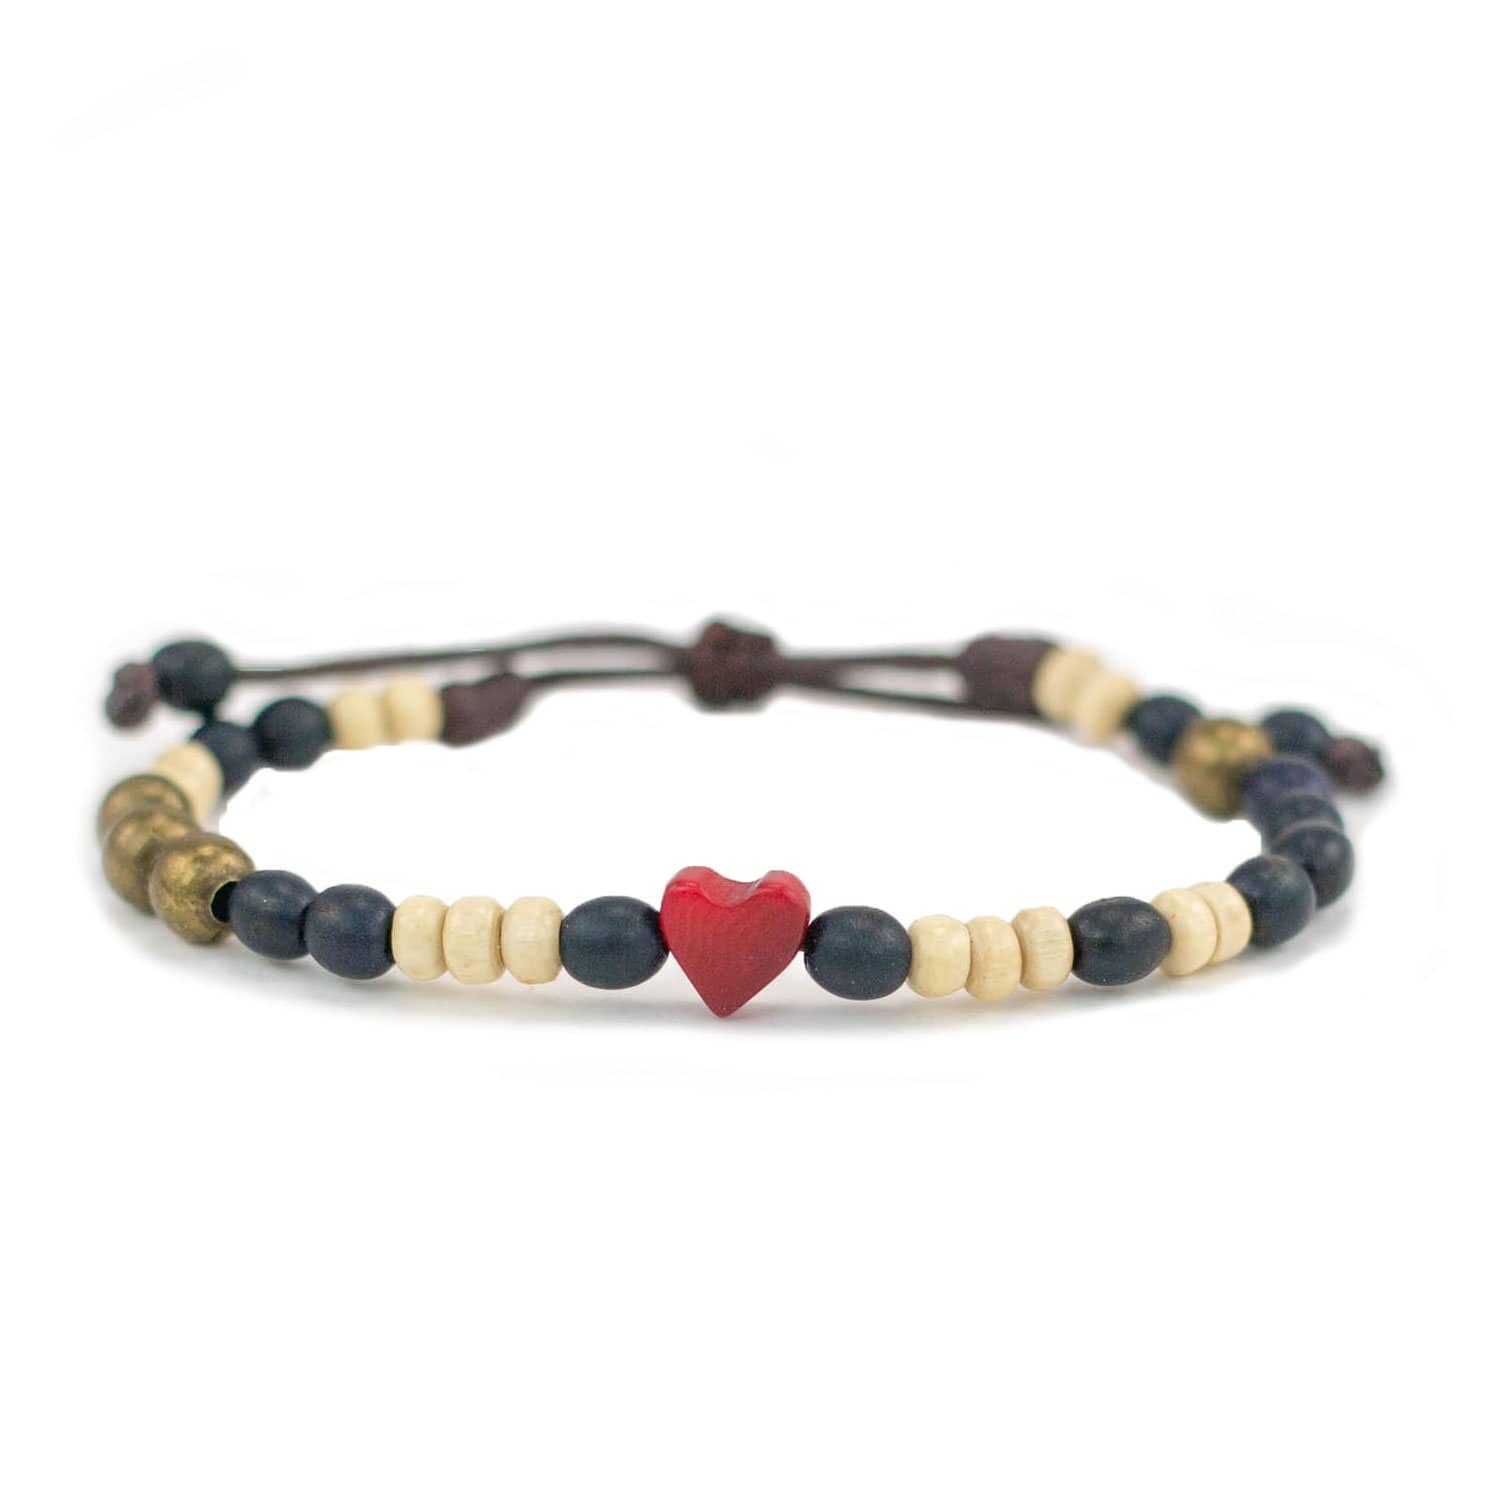 Tagua Heart Bracelet - Love Is Project